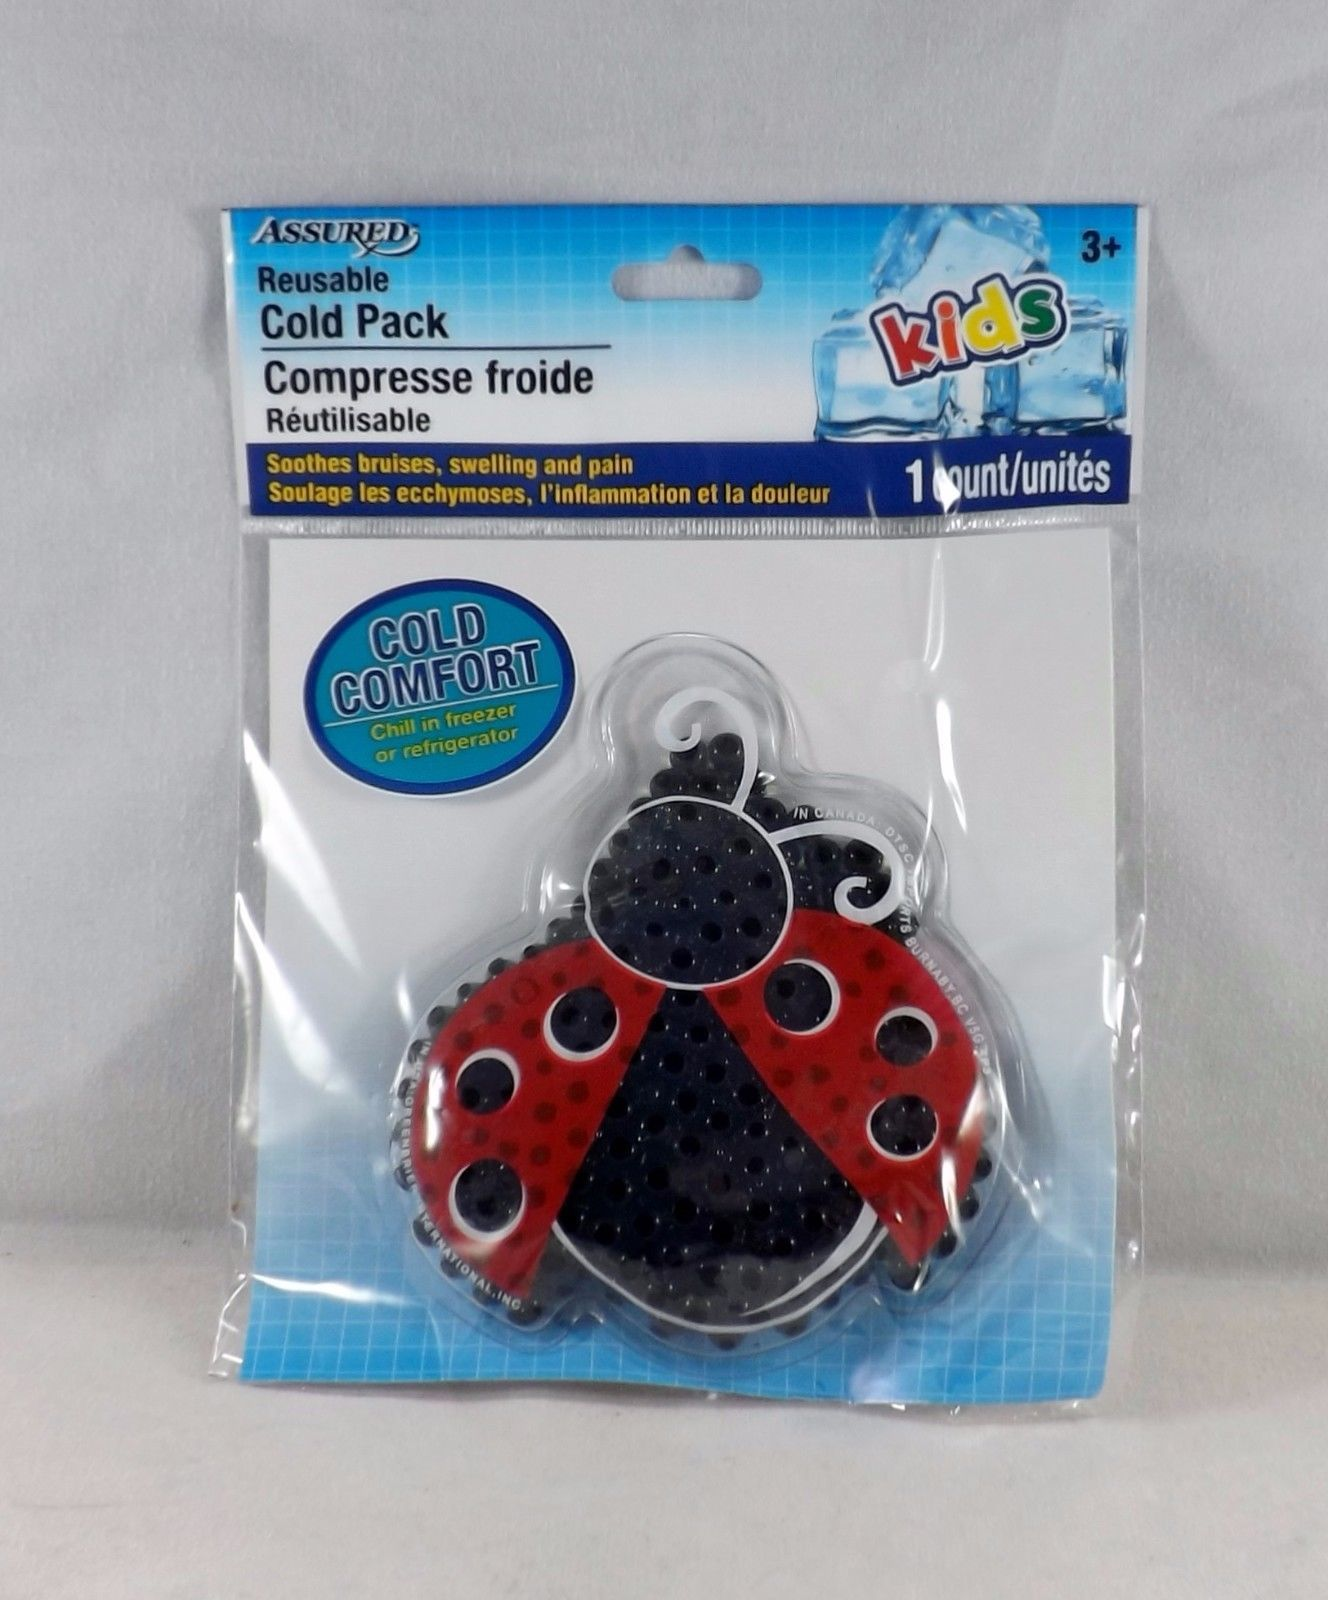 Assured Reusable Cold Pack For Ouchies and BooBoos - New - Ladybug